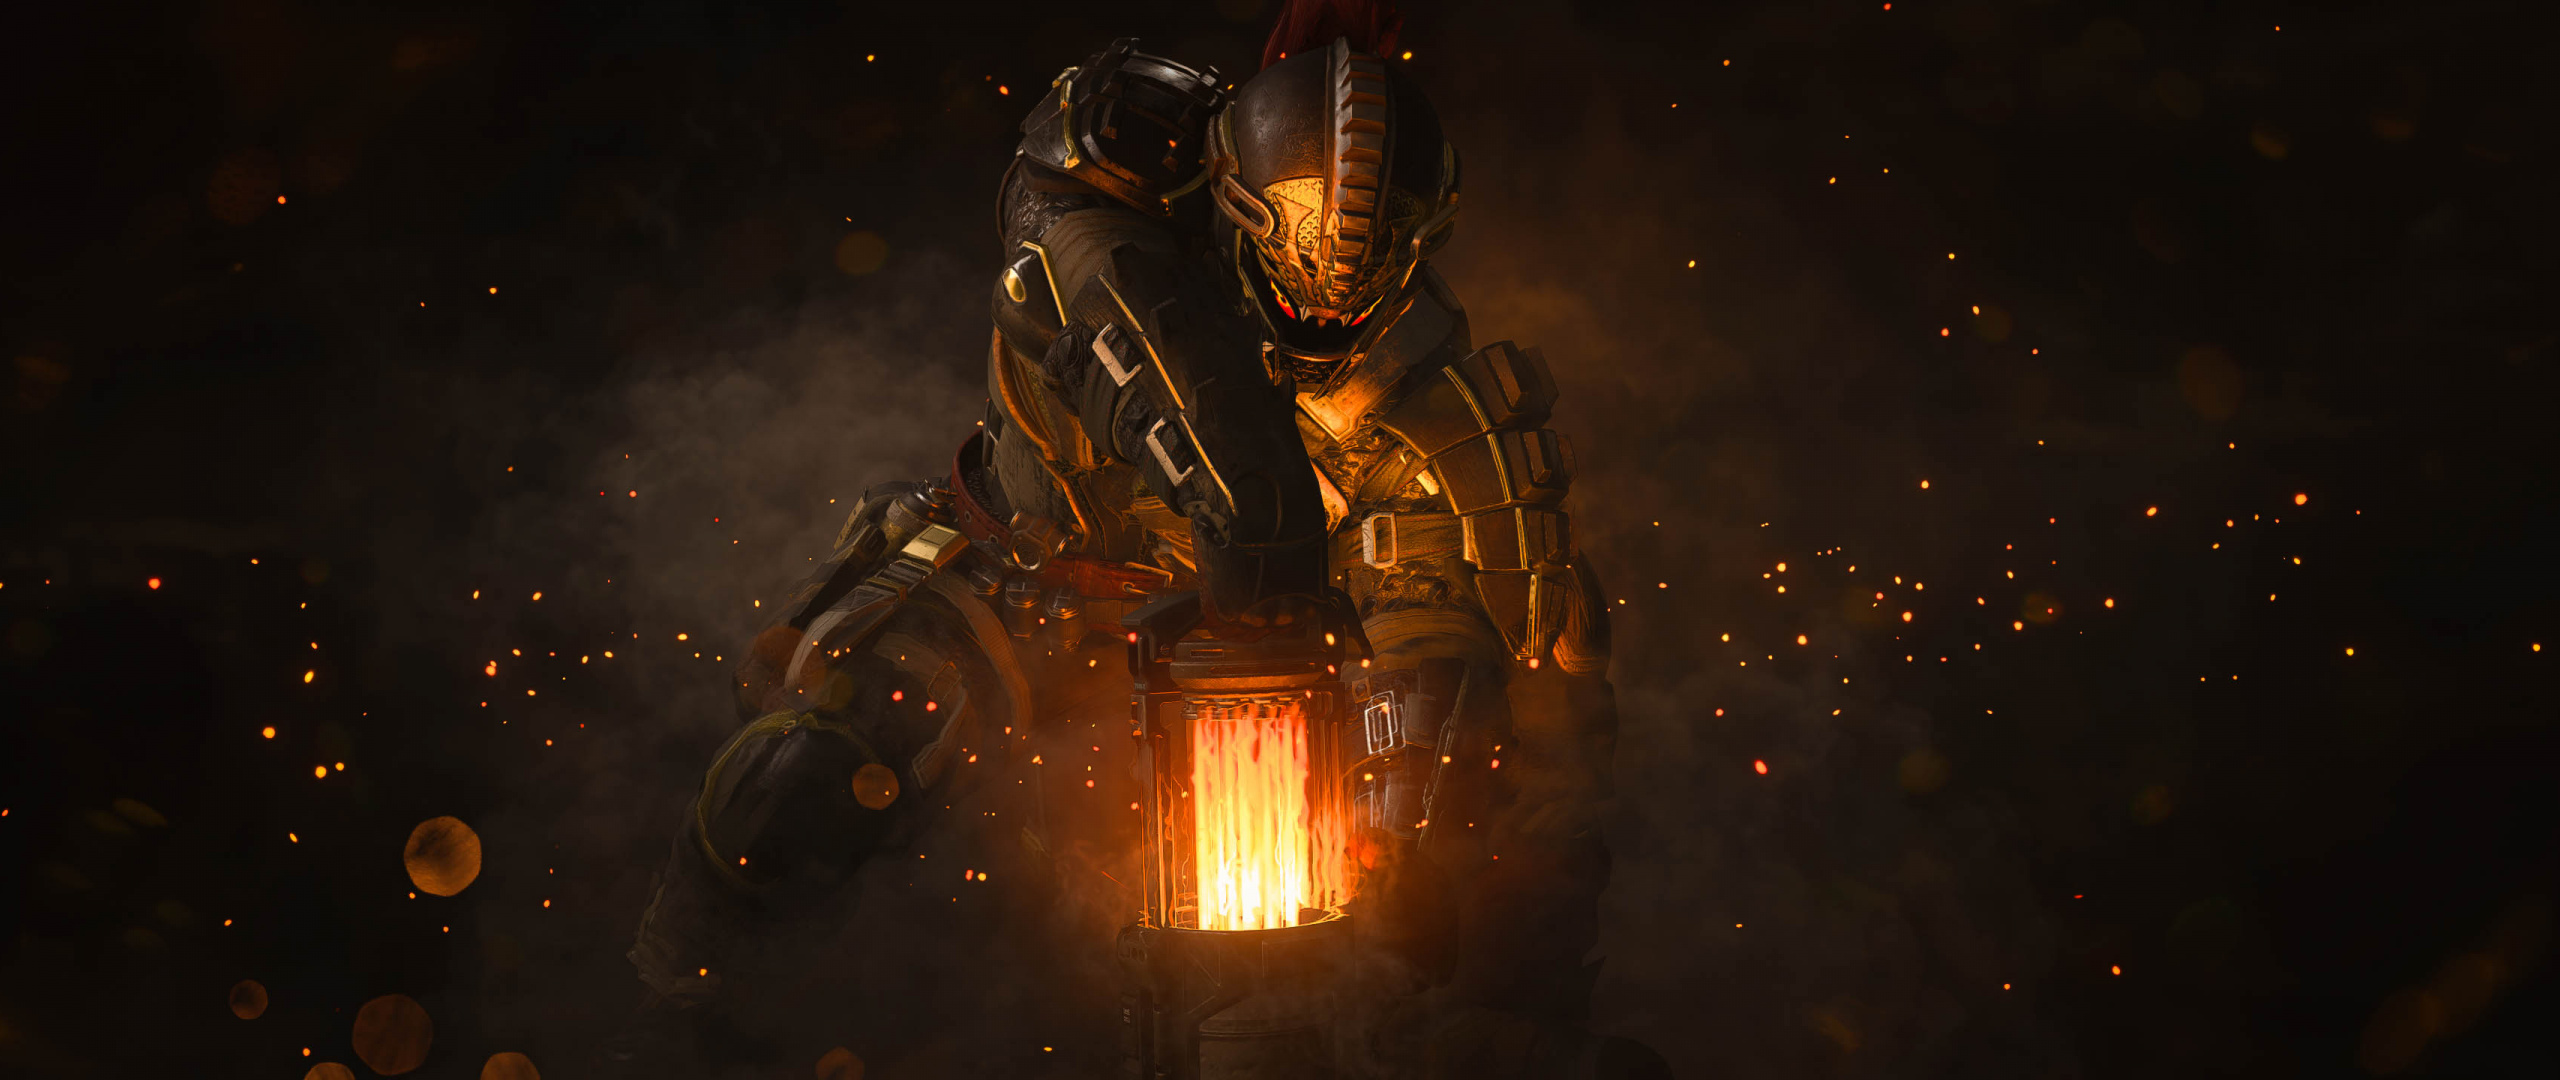 Cod Black Ops 3 Wallpaper 2560x1080 Download Hd Wallpaper Wallpapertip